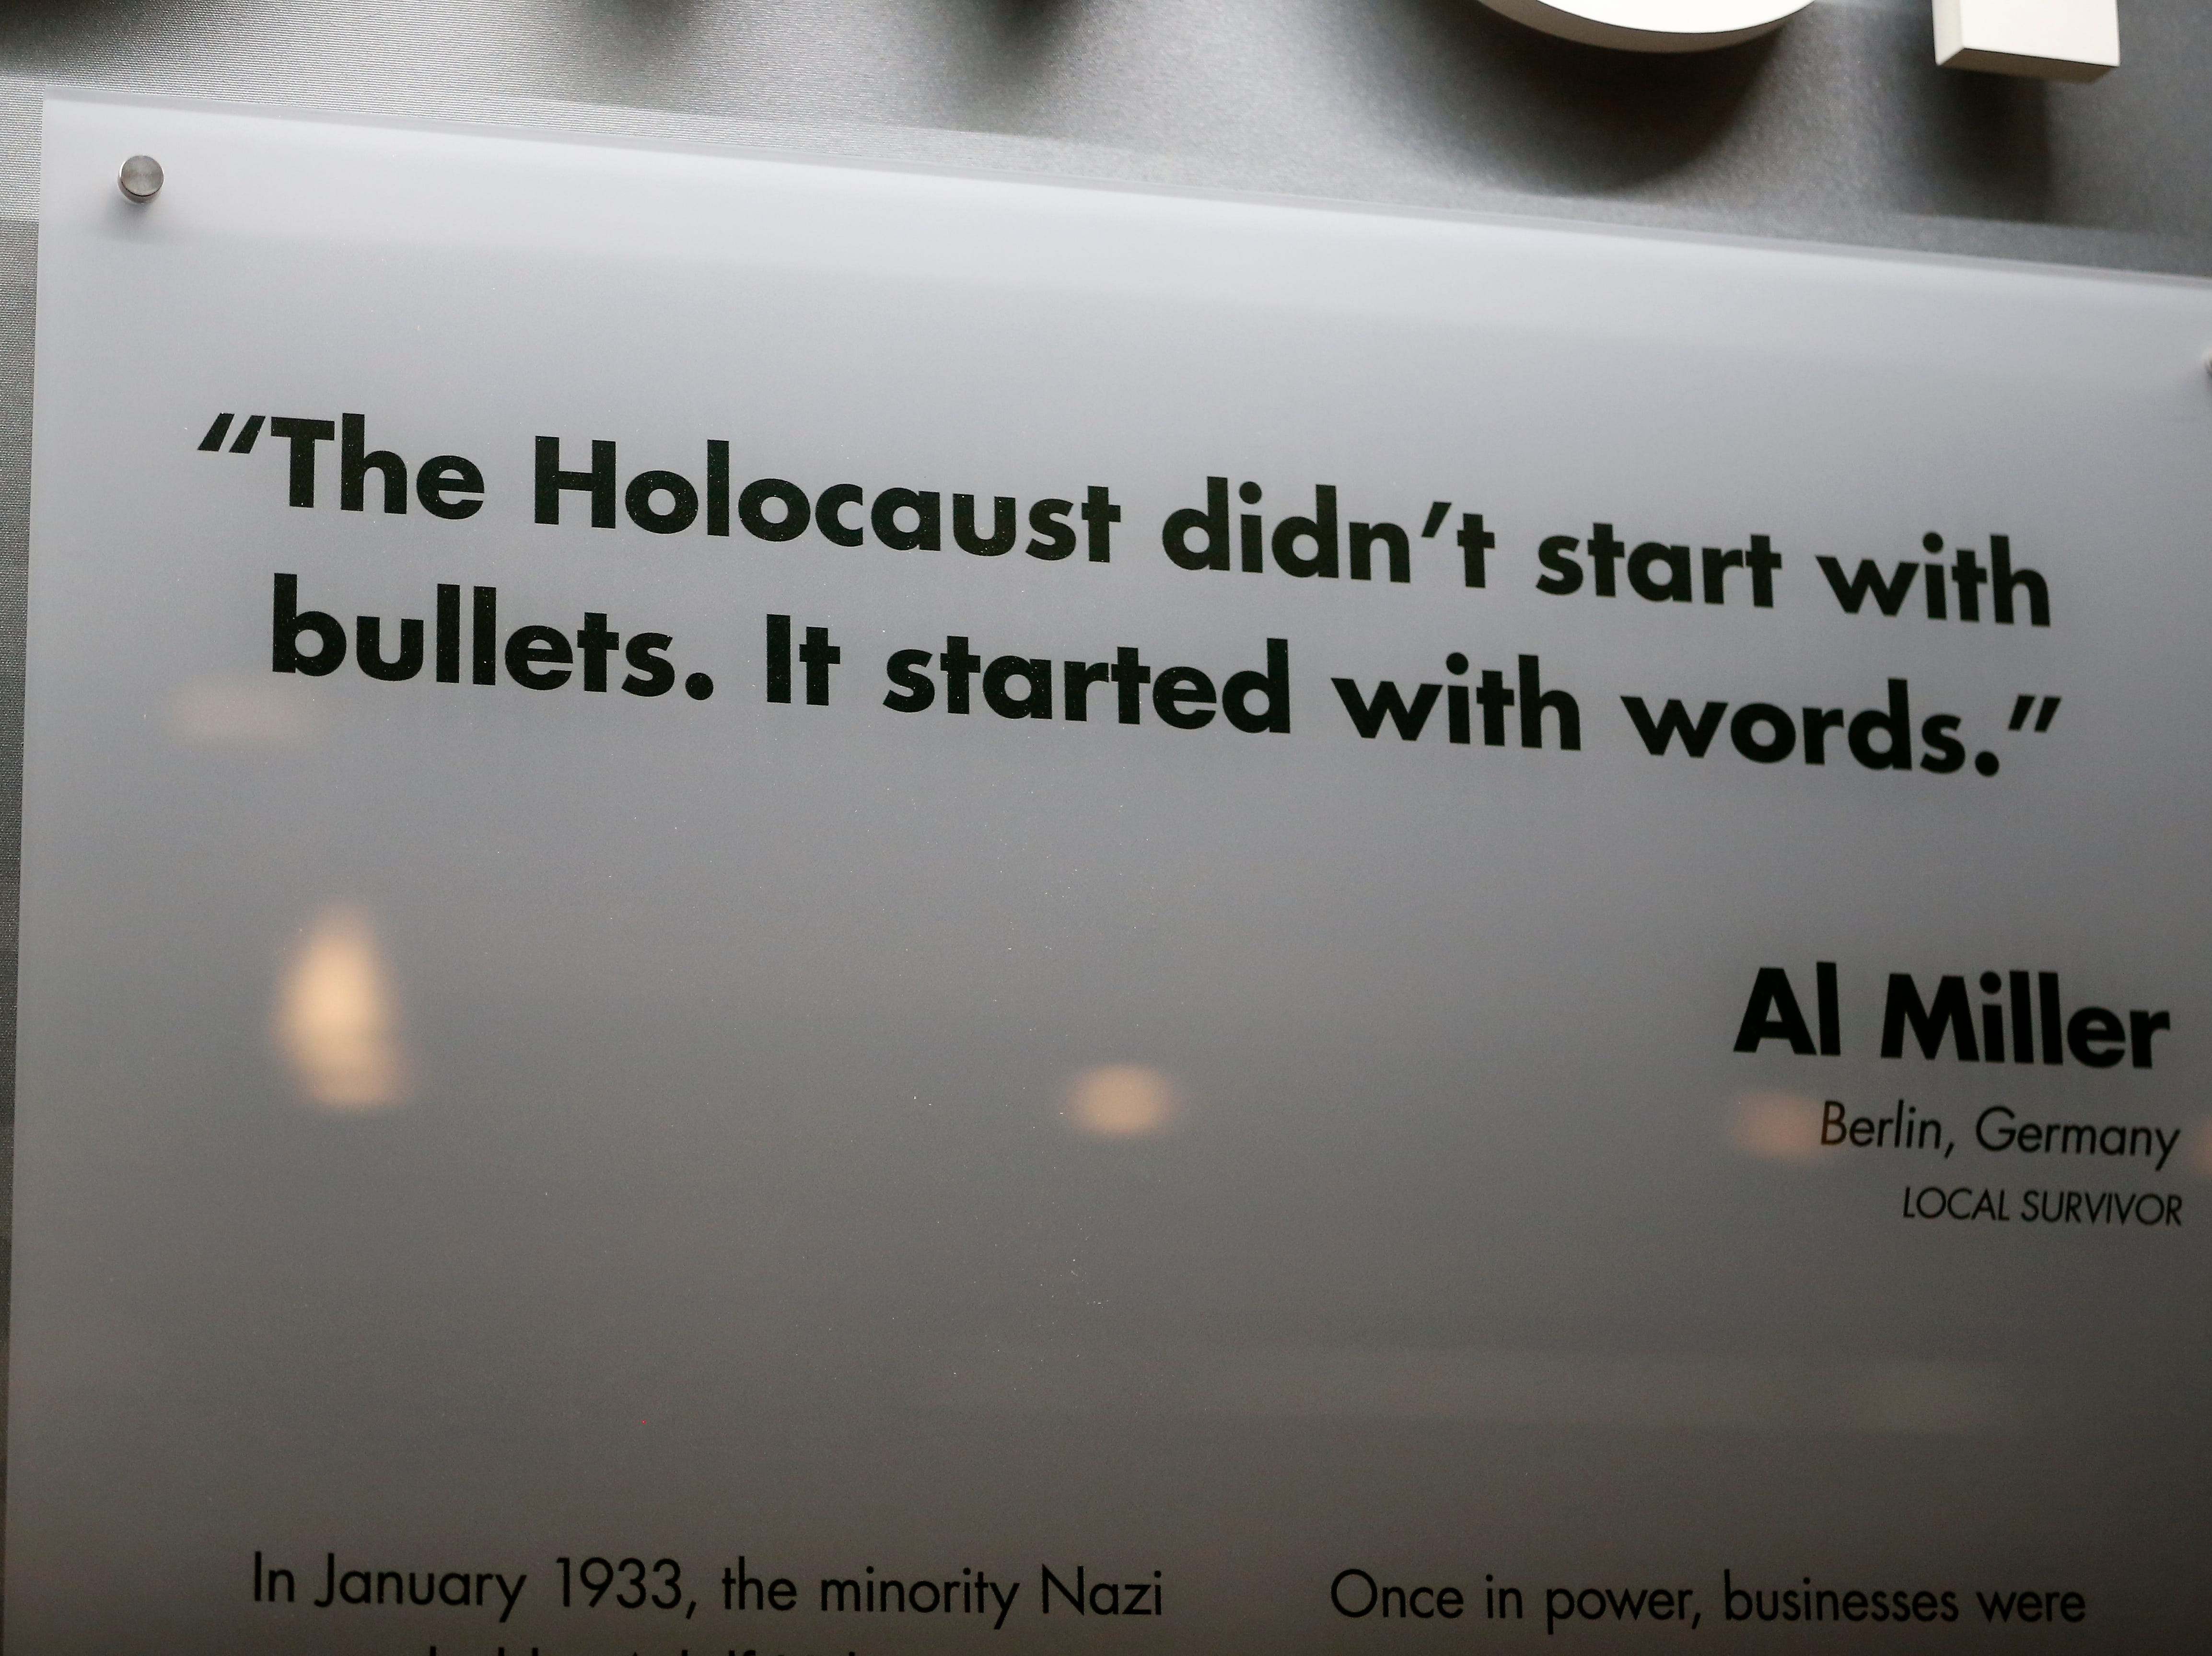 A quote from local Holocaust survivor Al Miller is displayed with background information in the new Holocaust and Humanity Center at the Cincinnati Museum Center in the Queensgate neighborhood of Cincinnati on Tuesday, Jan. 22, 2019. The new exhibit covering the events before, during and after the Holocaust will be open to the public Jan. 27.